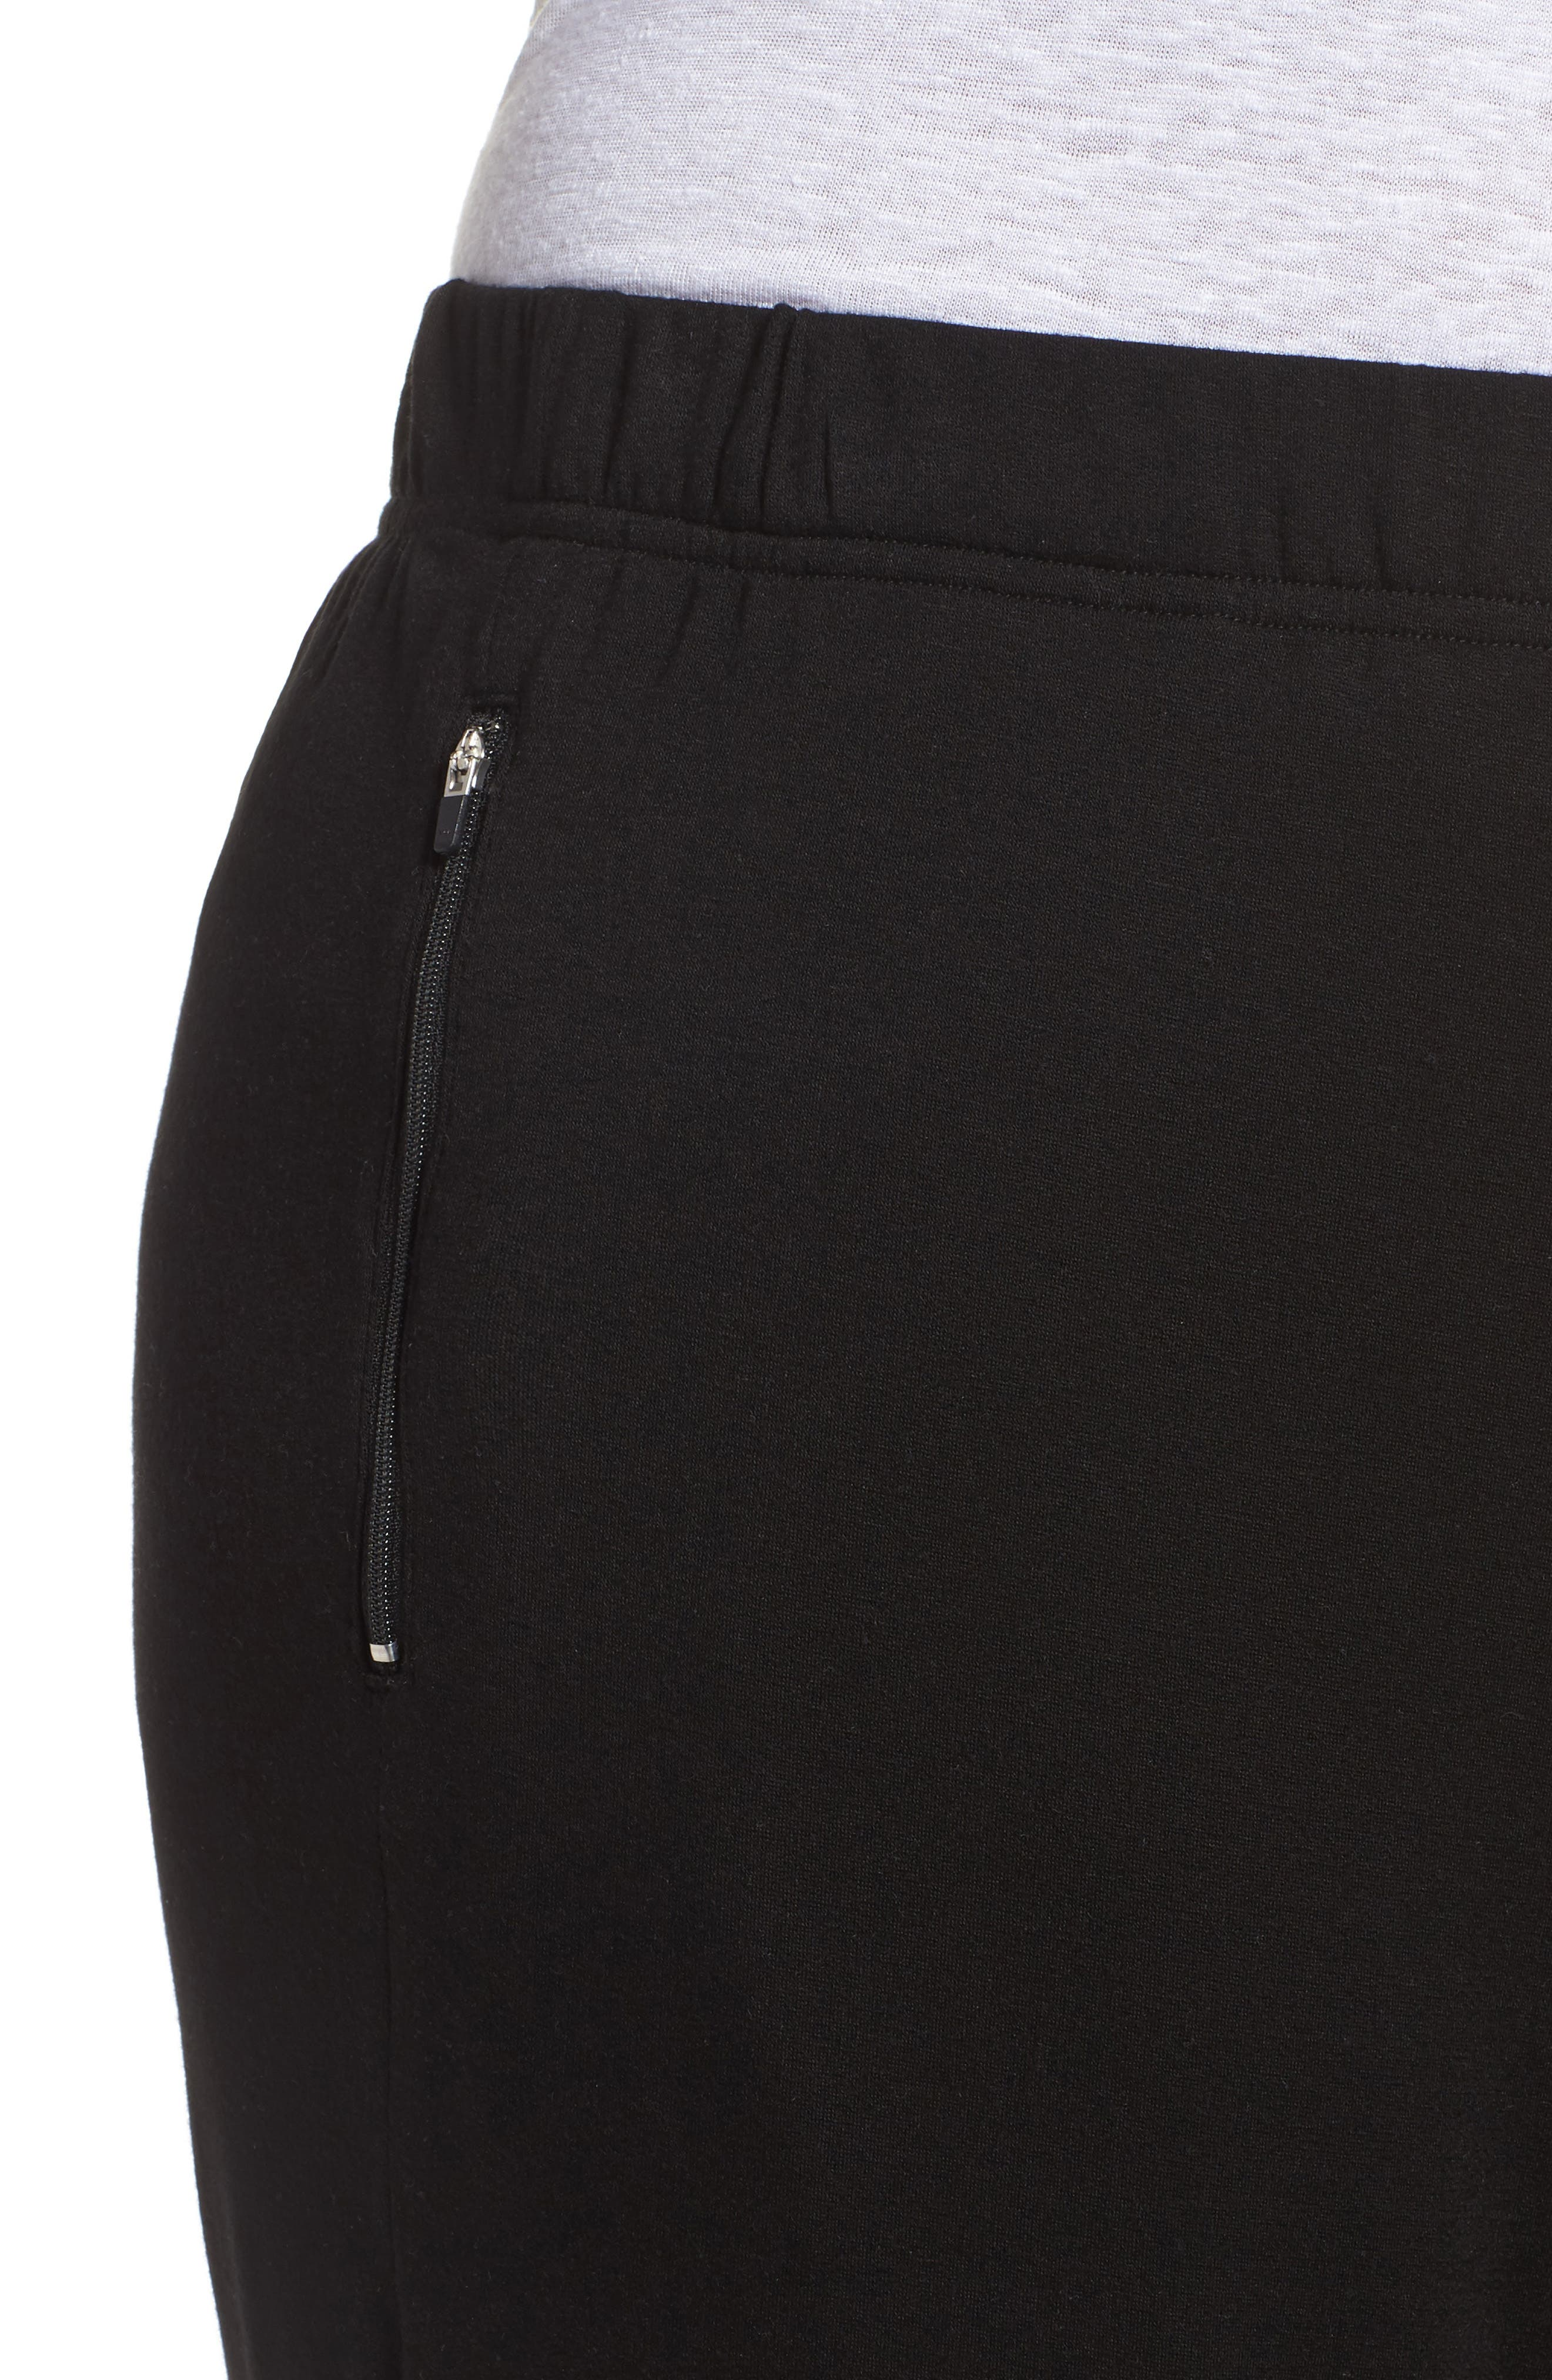 Slouchy Stretch Pants,                             Alternate thumbnail 4, color,                             001